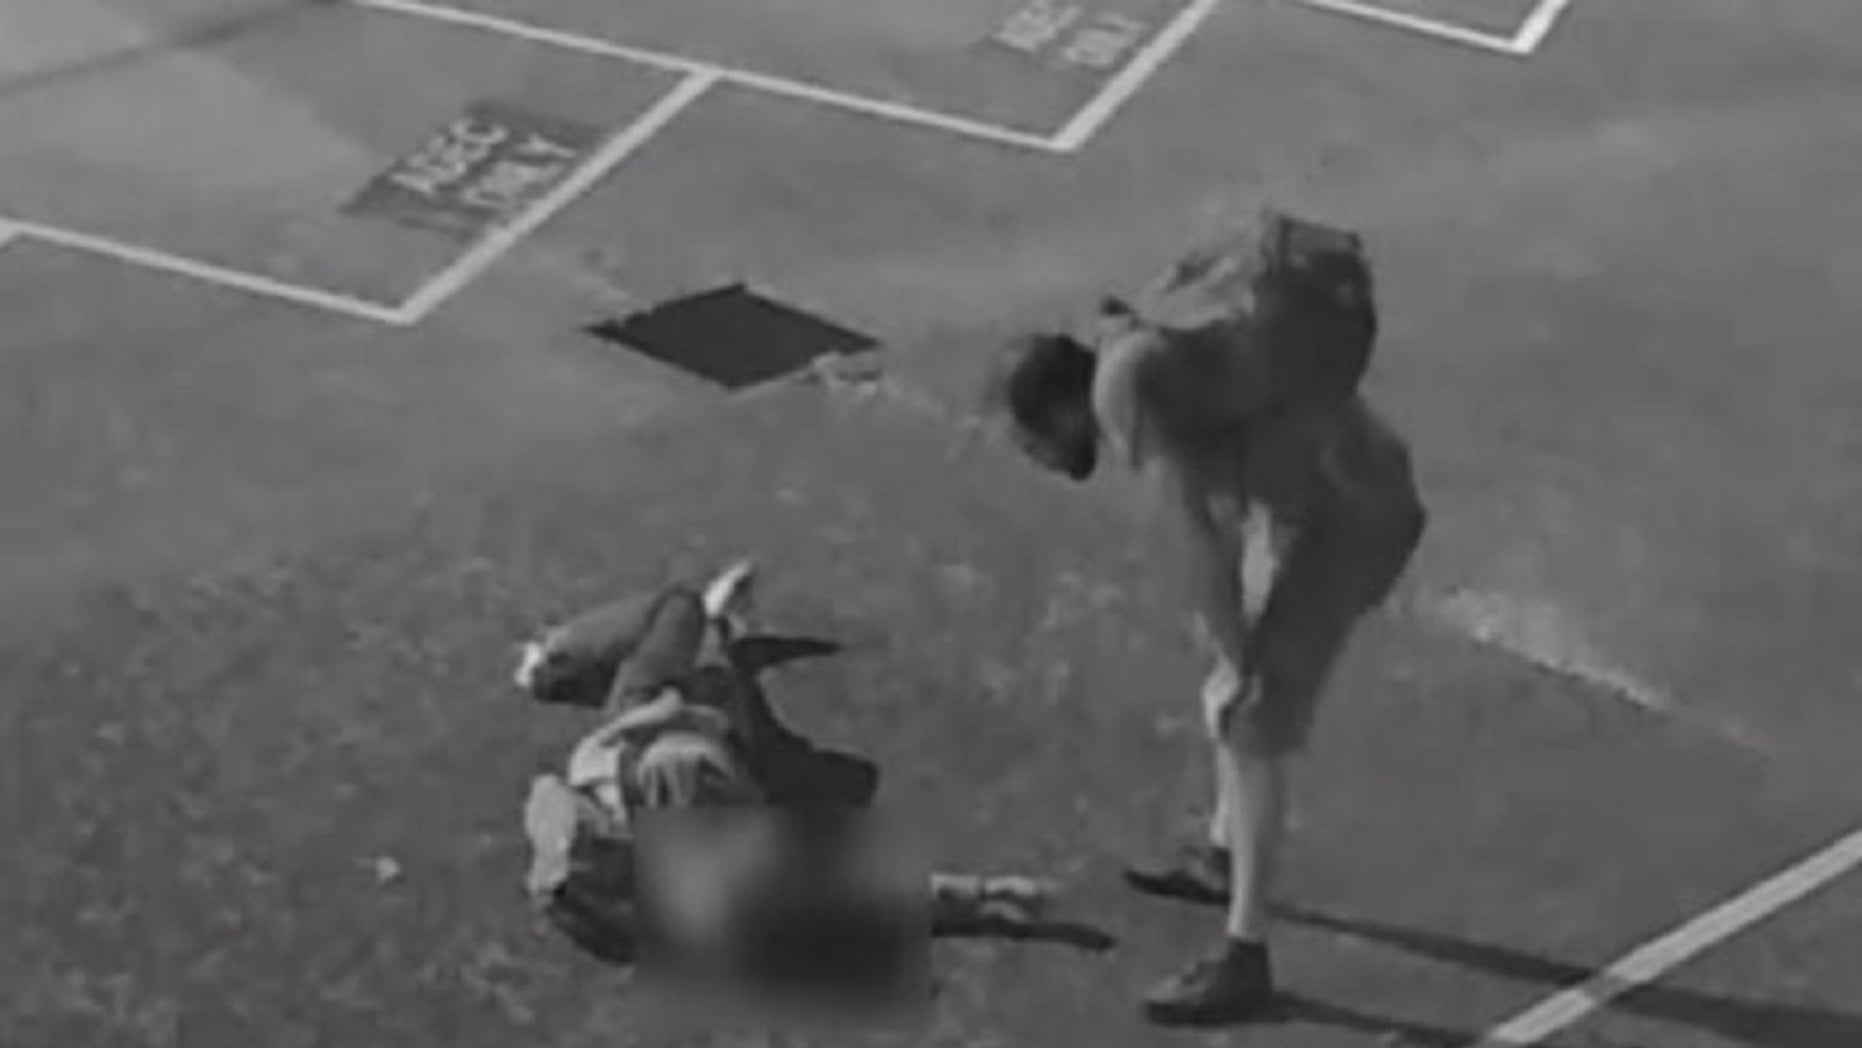 A screenshot from a surveillance video shows a suspect who, according to the police, is over an unidentified American tourist who was severely beaten in Australia.